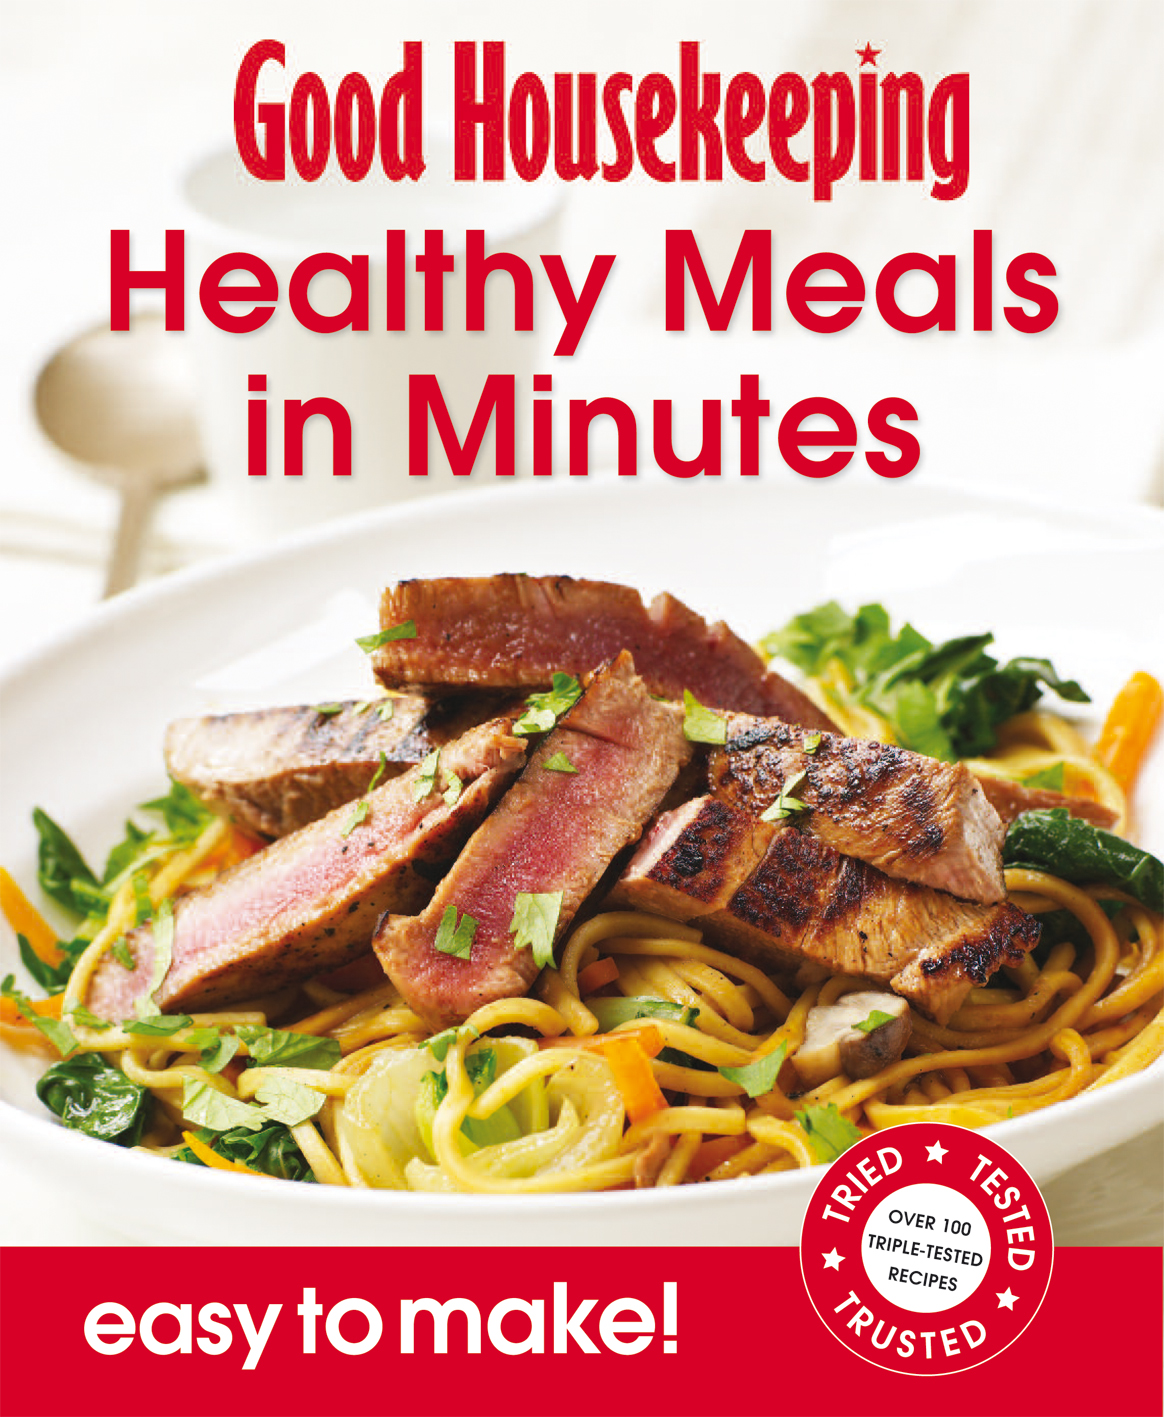 Good Housekeeping Easy To Make! Healthy Meals in Minutes